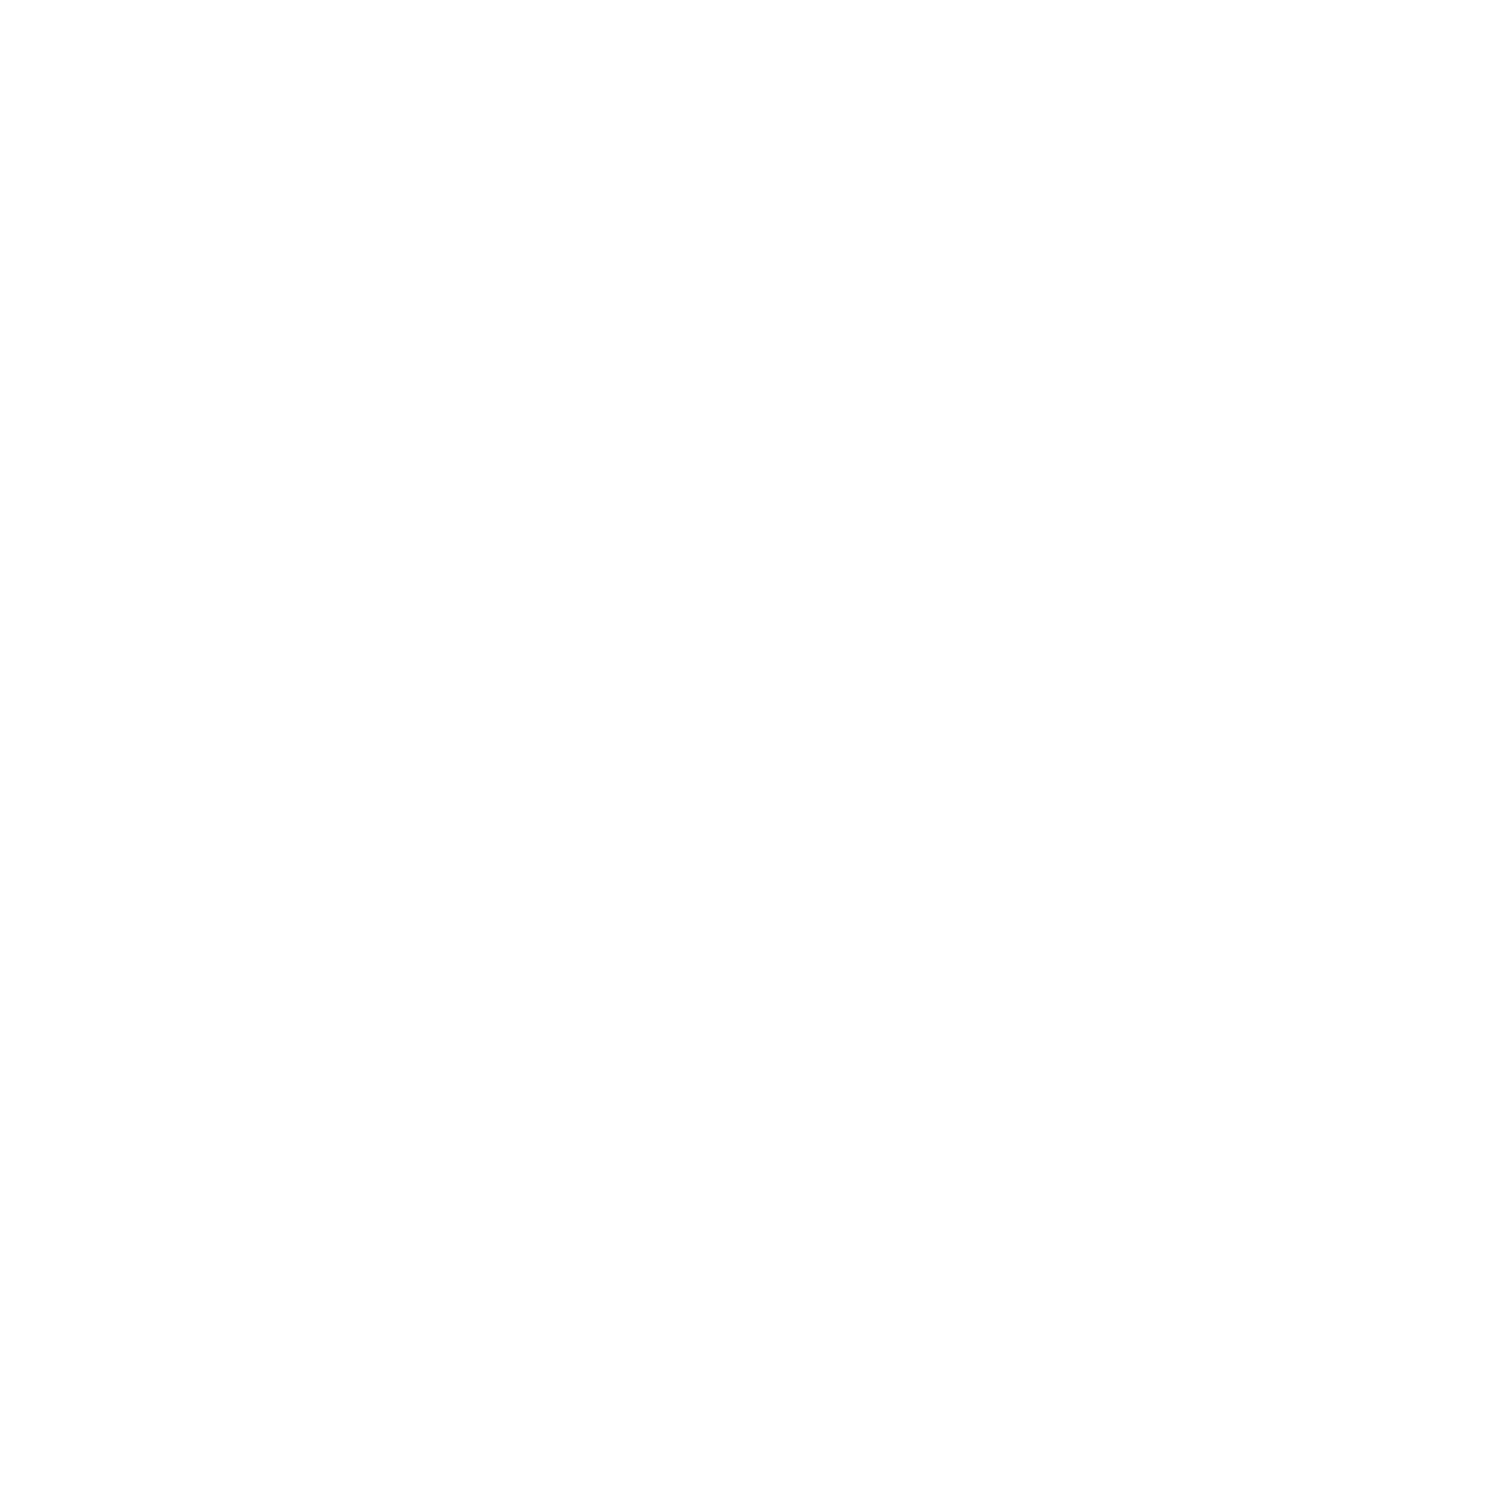 Broadview Avenue Group